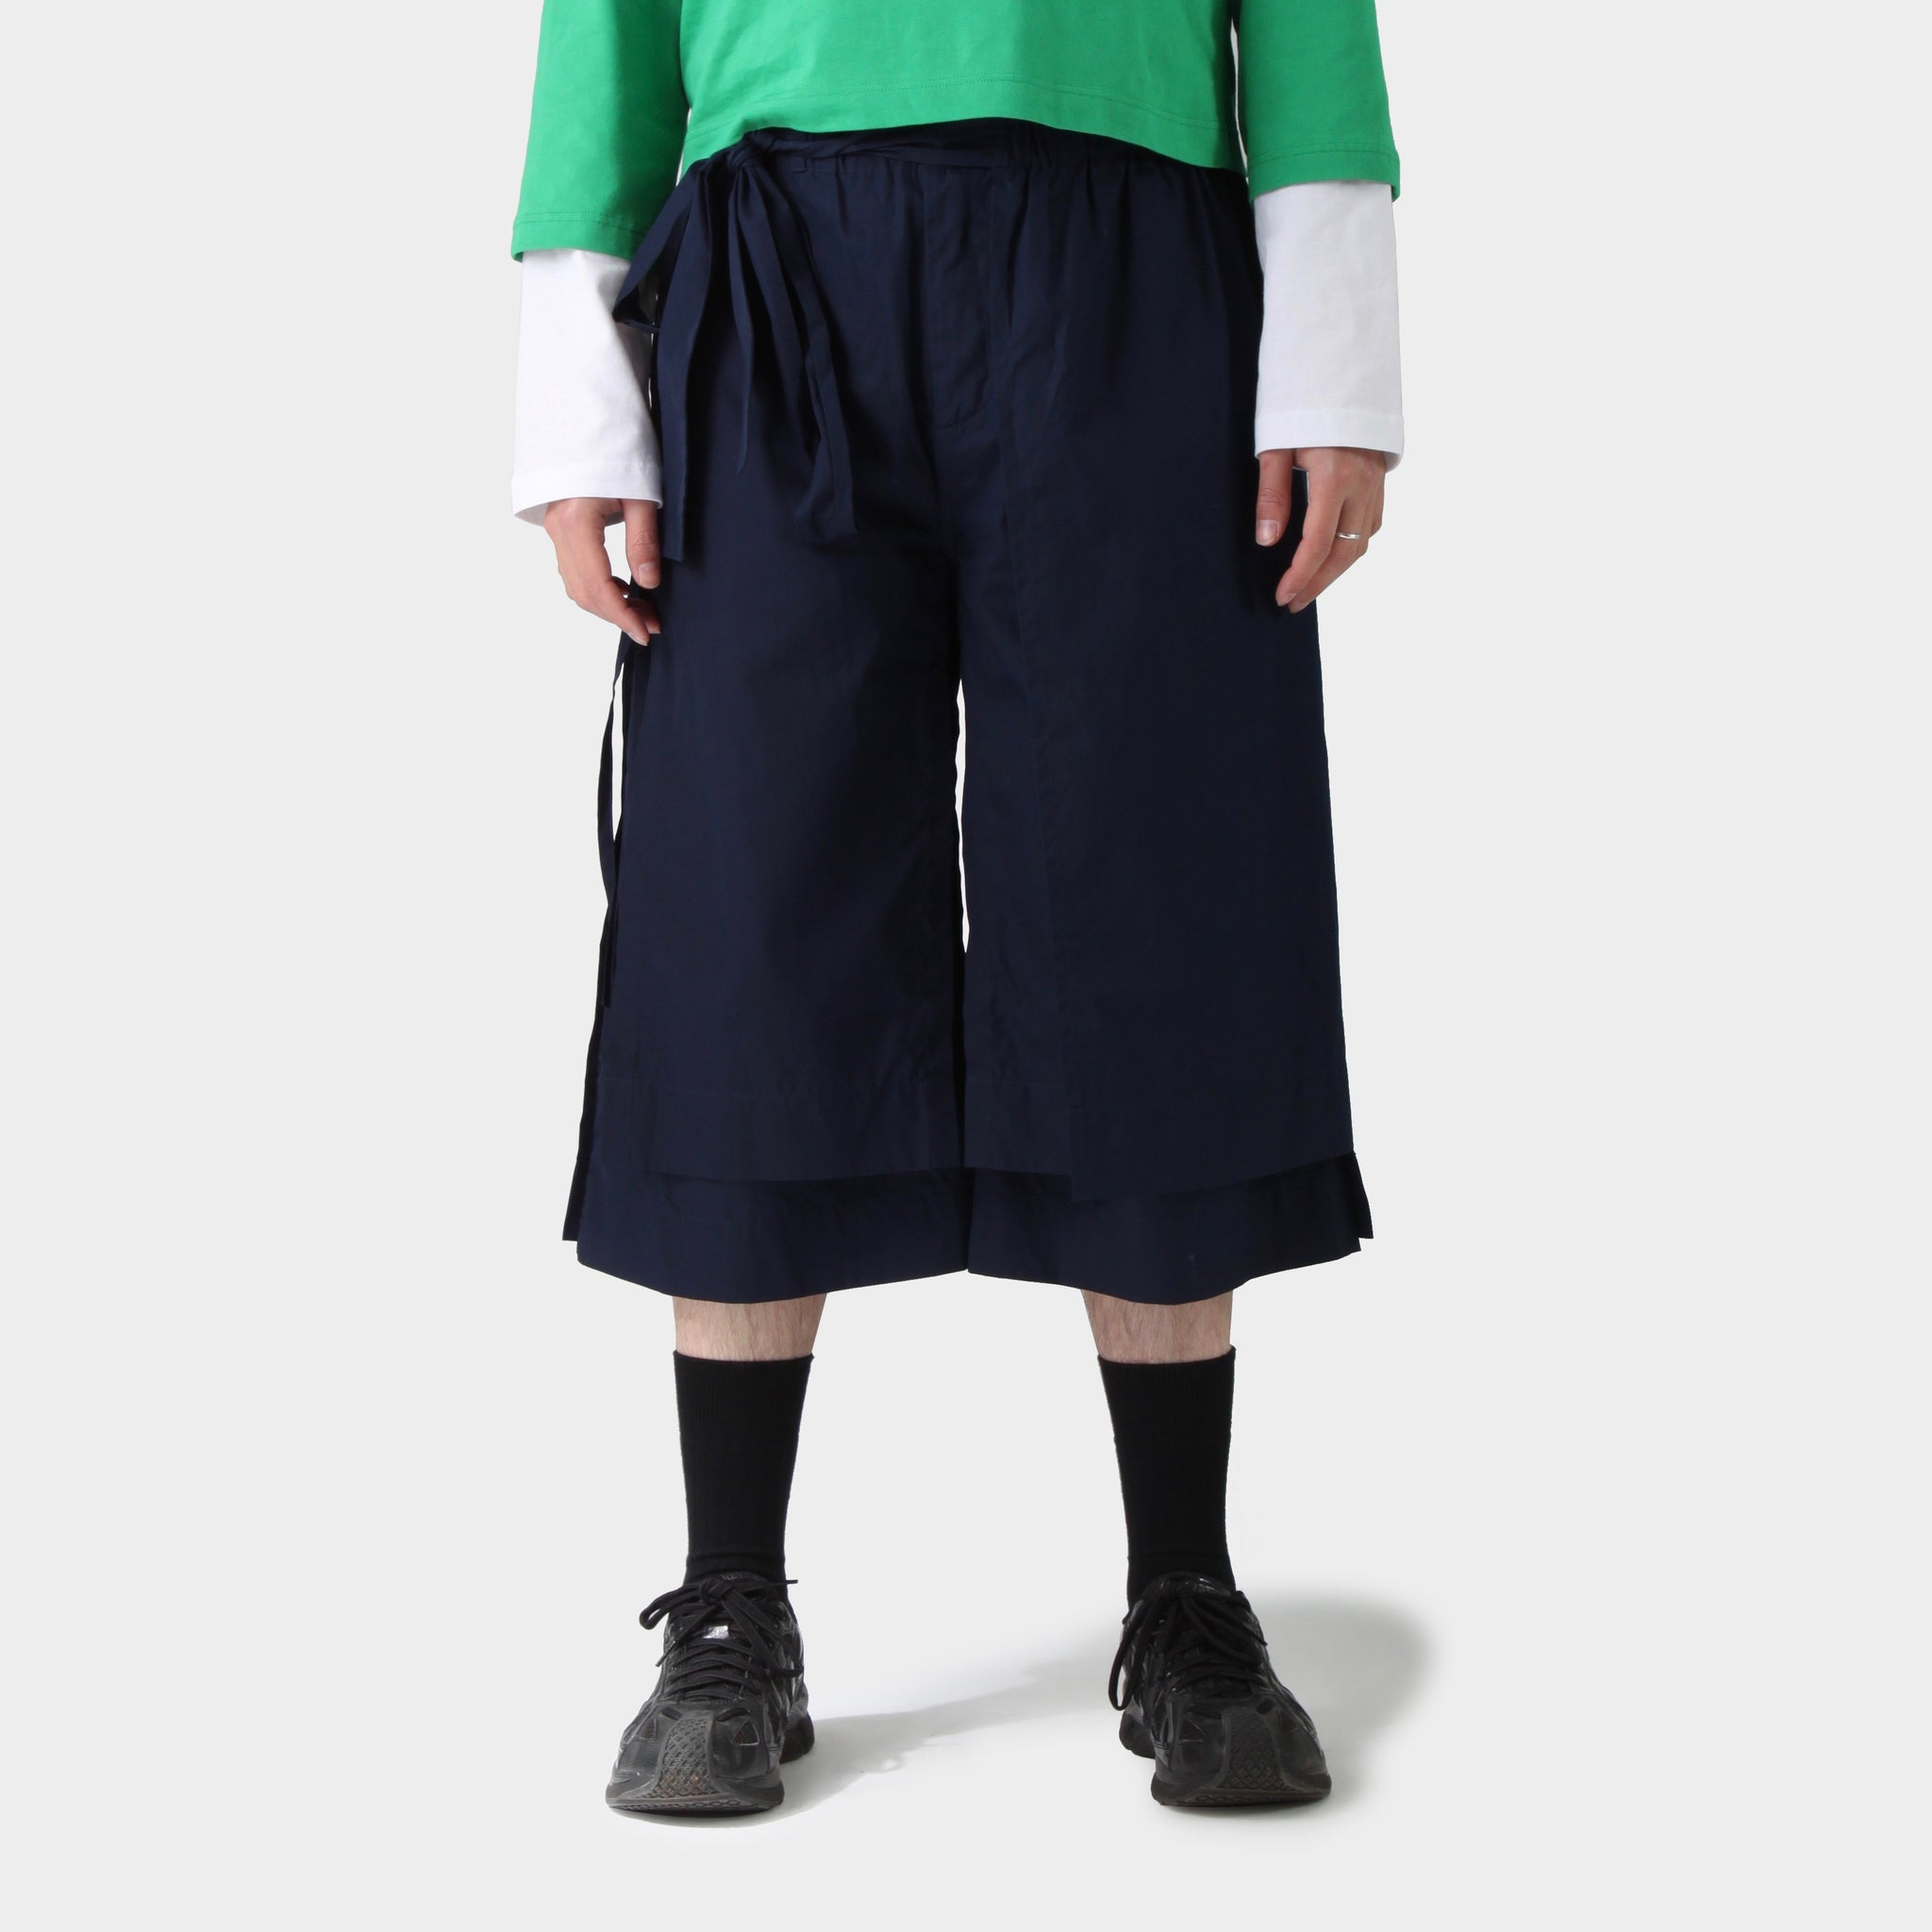 Craig Green Navy Layered Shorts